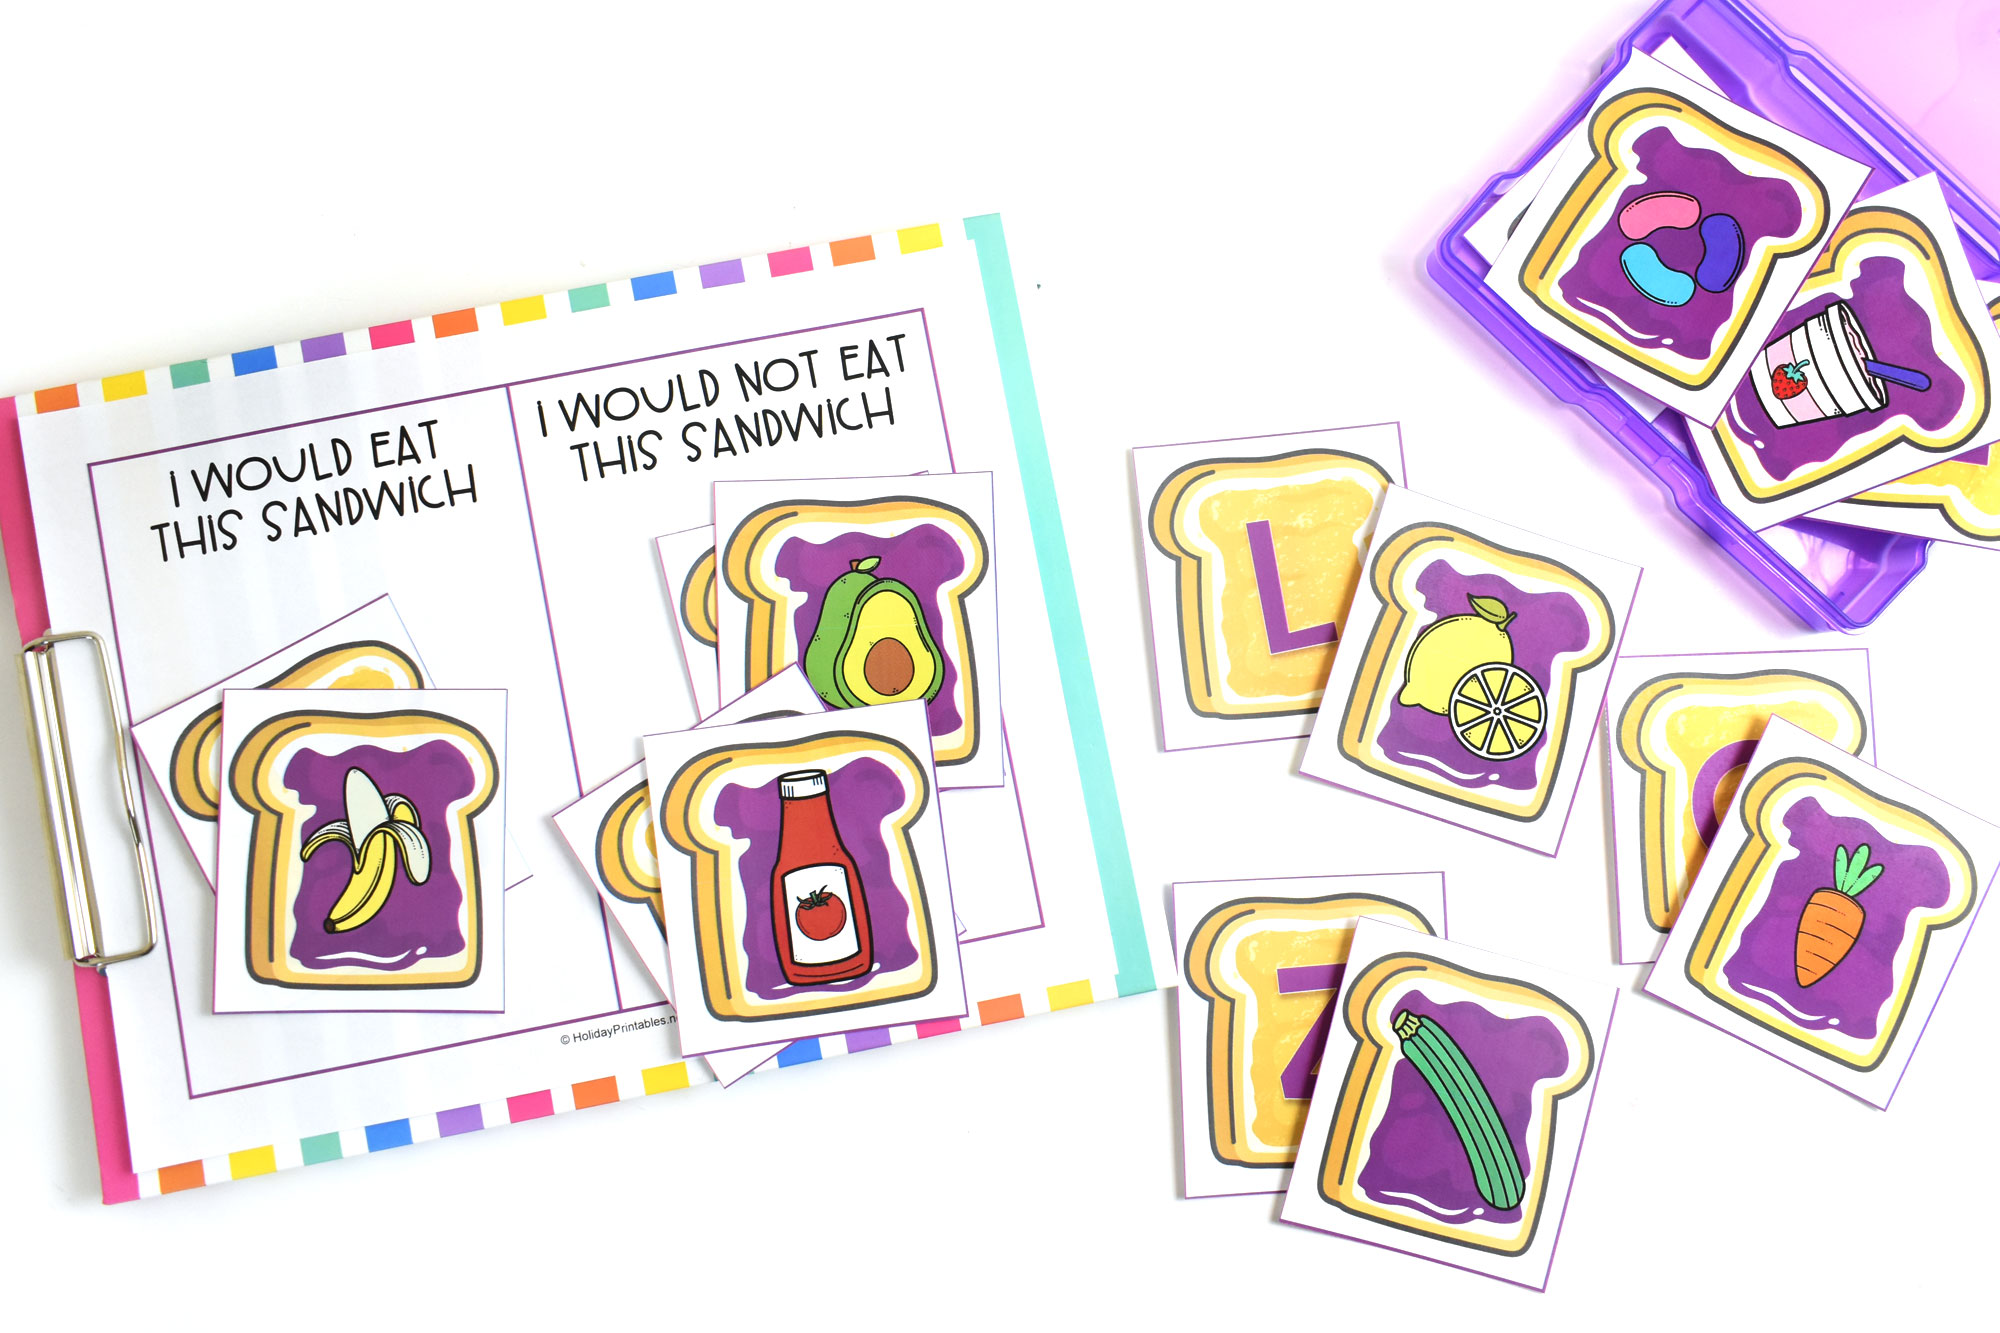 Peanut Butter and Jelly Letter Matching Activity | HolidayPrintables.net #printables #peanutbutterandjelly #alphabetprintables #preschoolprintables #educationprintables #homeschoolprintables #weloveprintables #holidayprintables